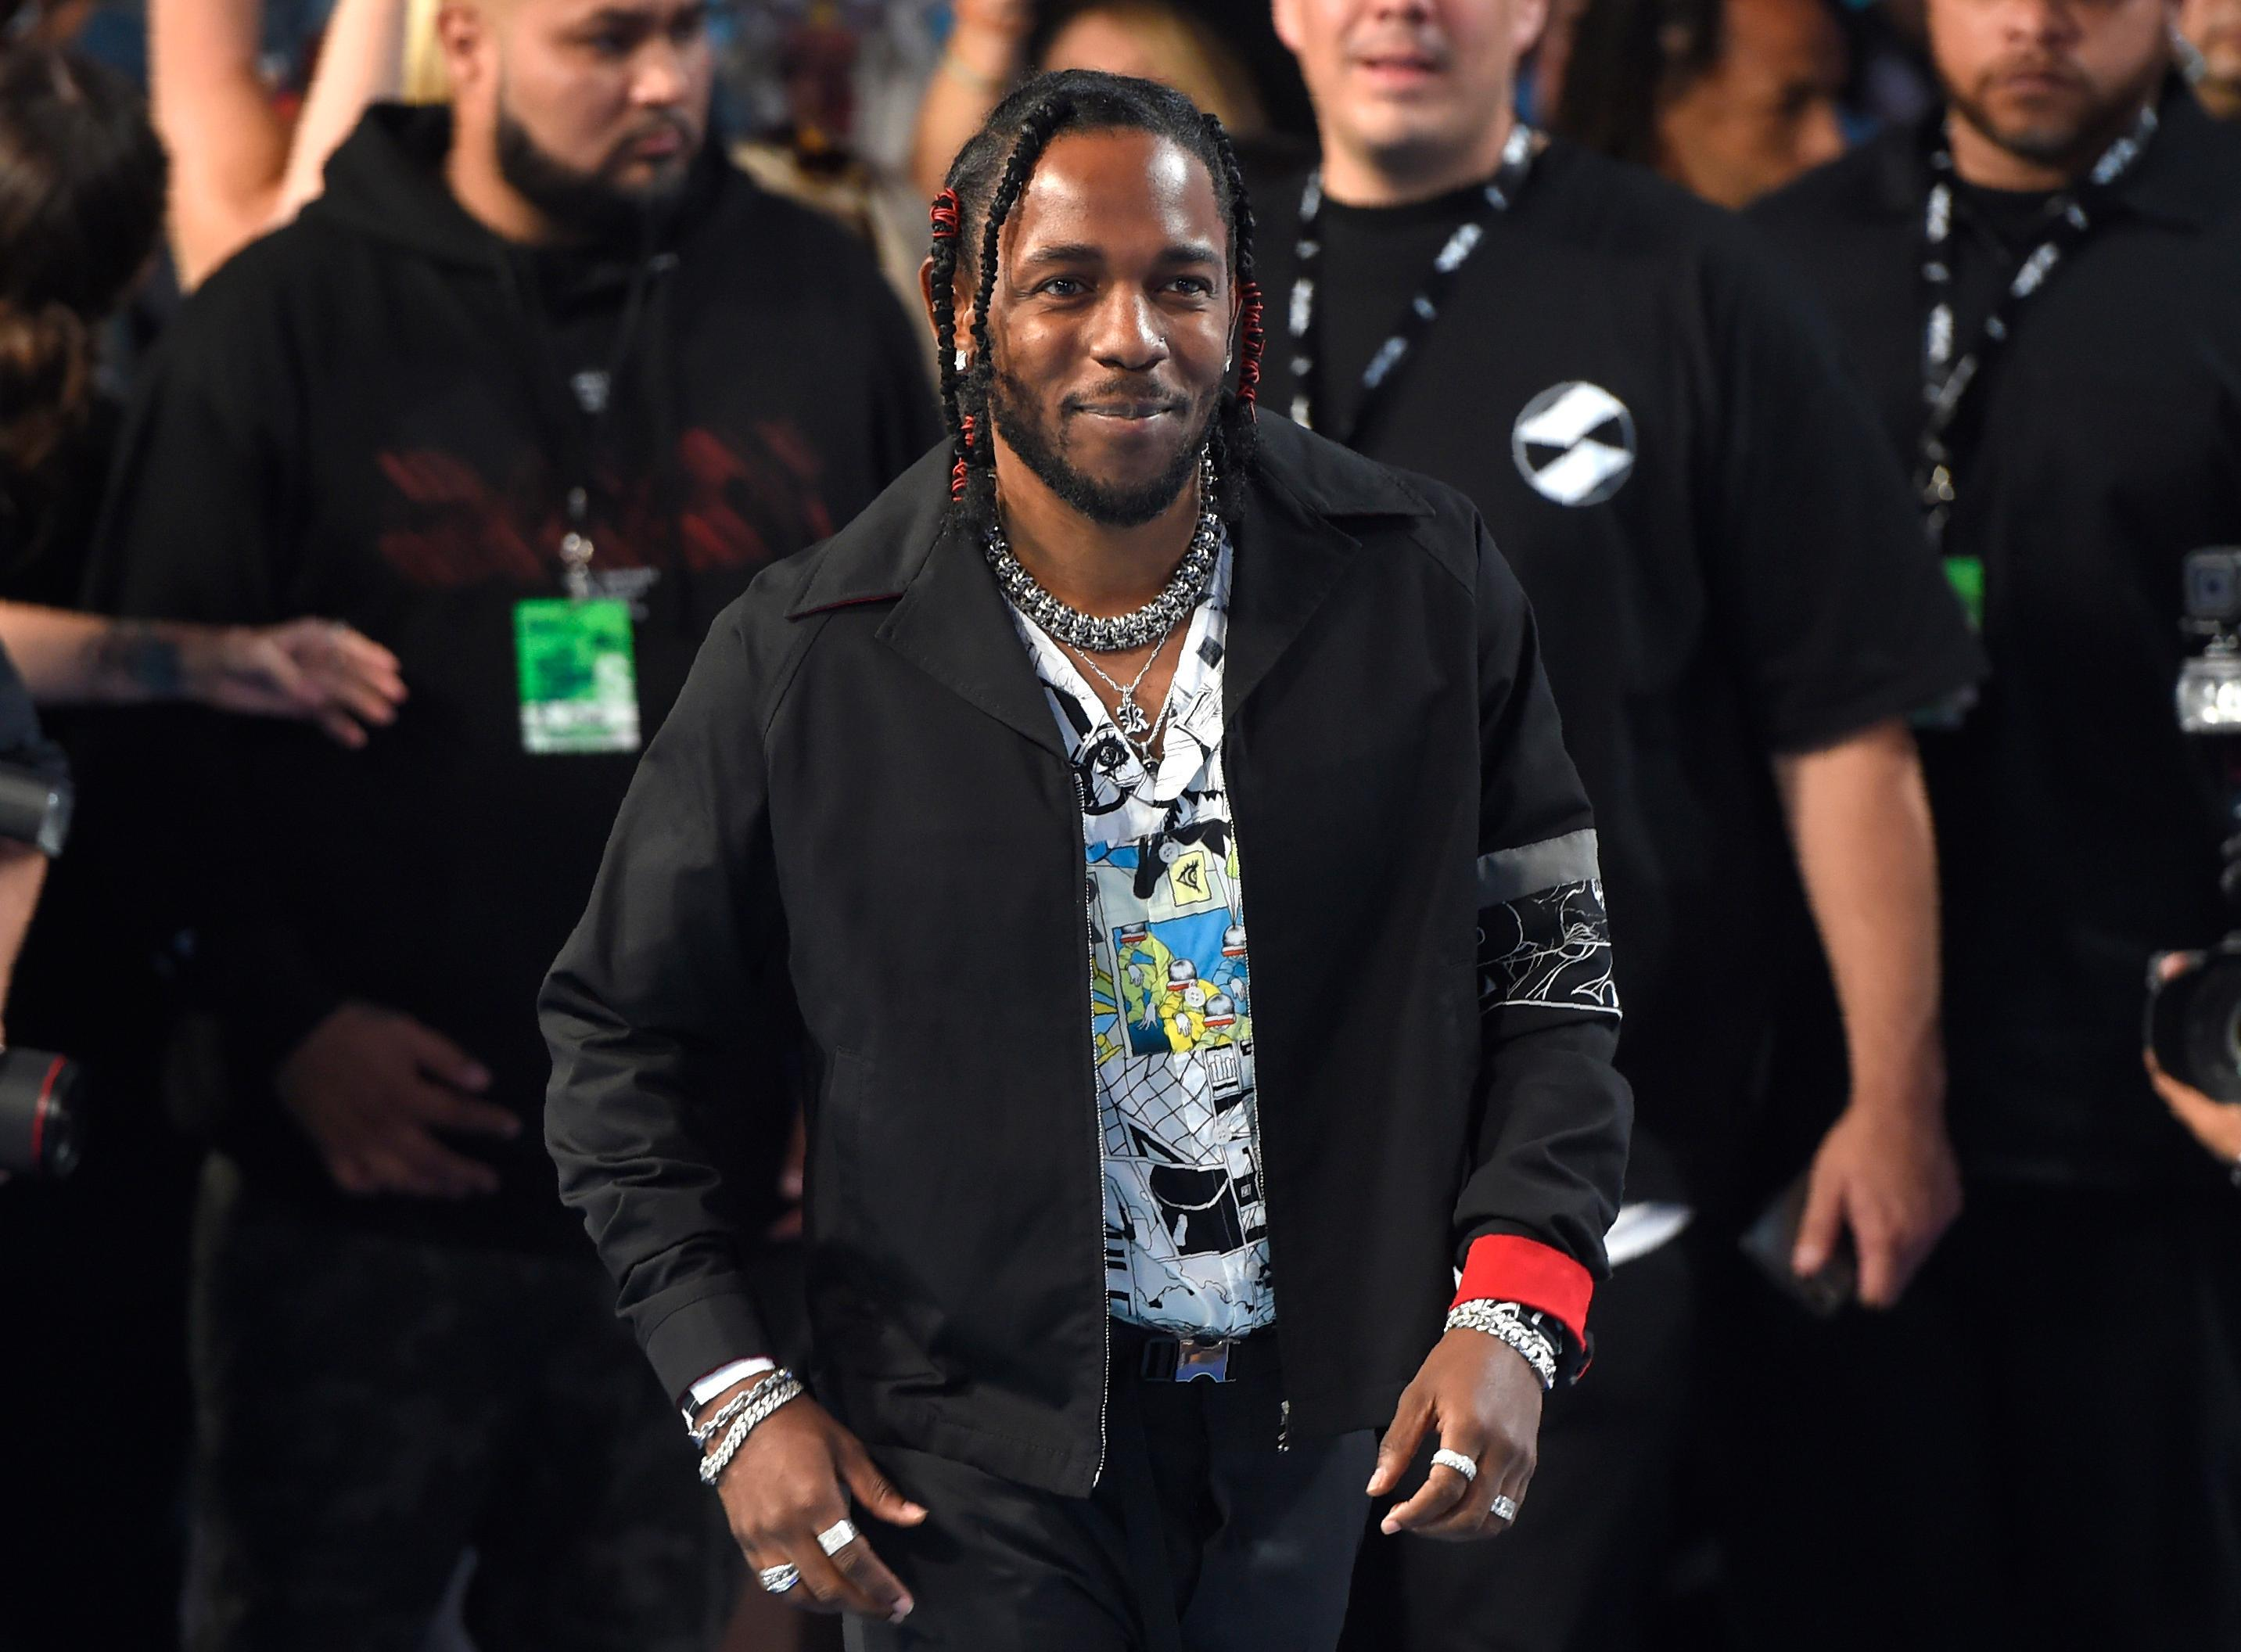 FILE - In this Aug. 27, 2017 file photo, Kendrick Lamar arrives at the MTV Video Music Awards at The Forum  in Inglewood, Calif.  Lamar and Olympic gymnast Aly Raisman are among the celebrities, athletes and business leaders heading to Boston for Forbes' Under 30 Summit. The four-day event focused on technology and business starts Sunday, Oct. 1 and runs through Wednesday. (Photo by Chris Pizzello/Invision/AP, File)